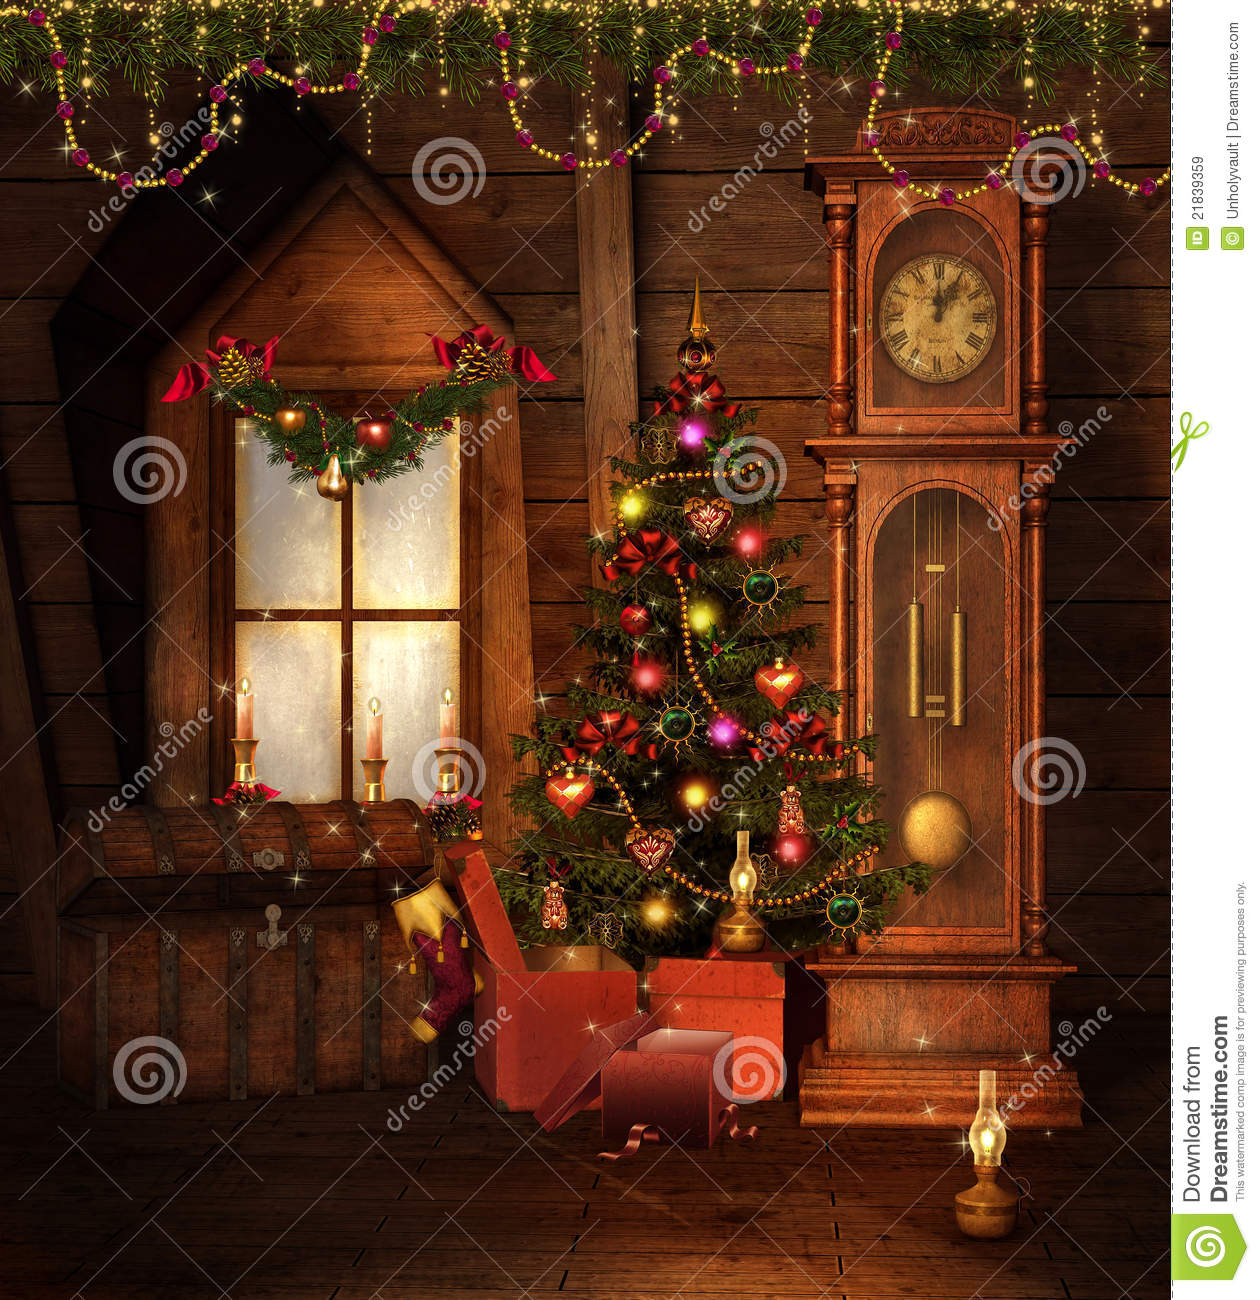 Old Christmas room stock illustration. Illustration of background ...